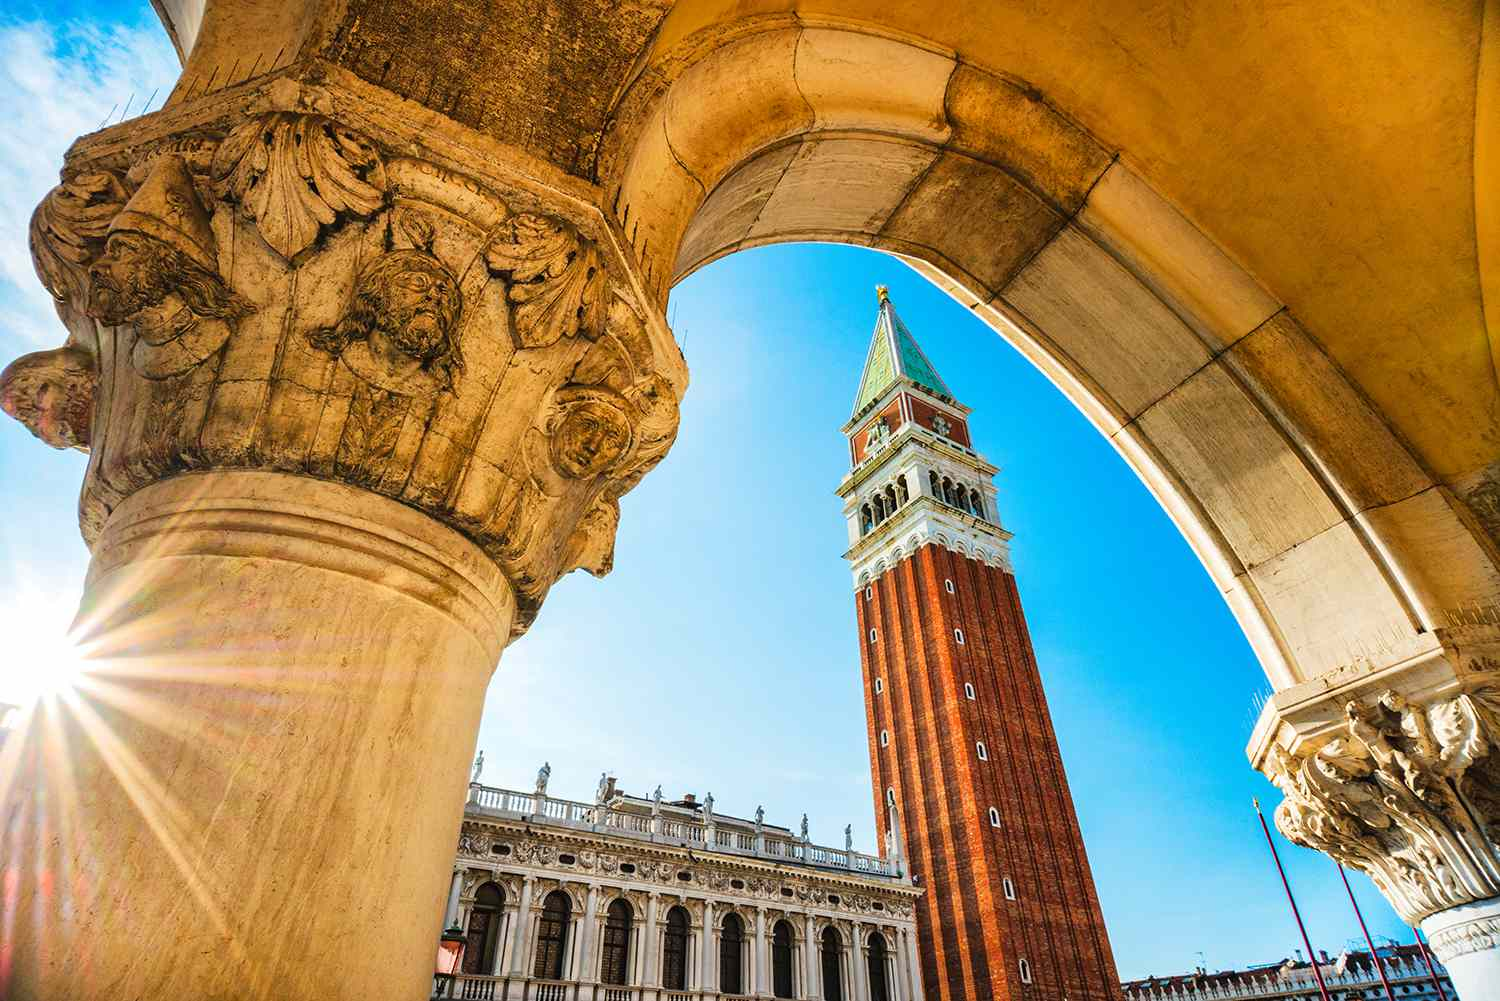 Angled shot of the Piazza de San Marco in Venice, Italy